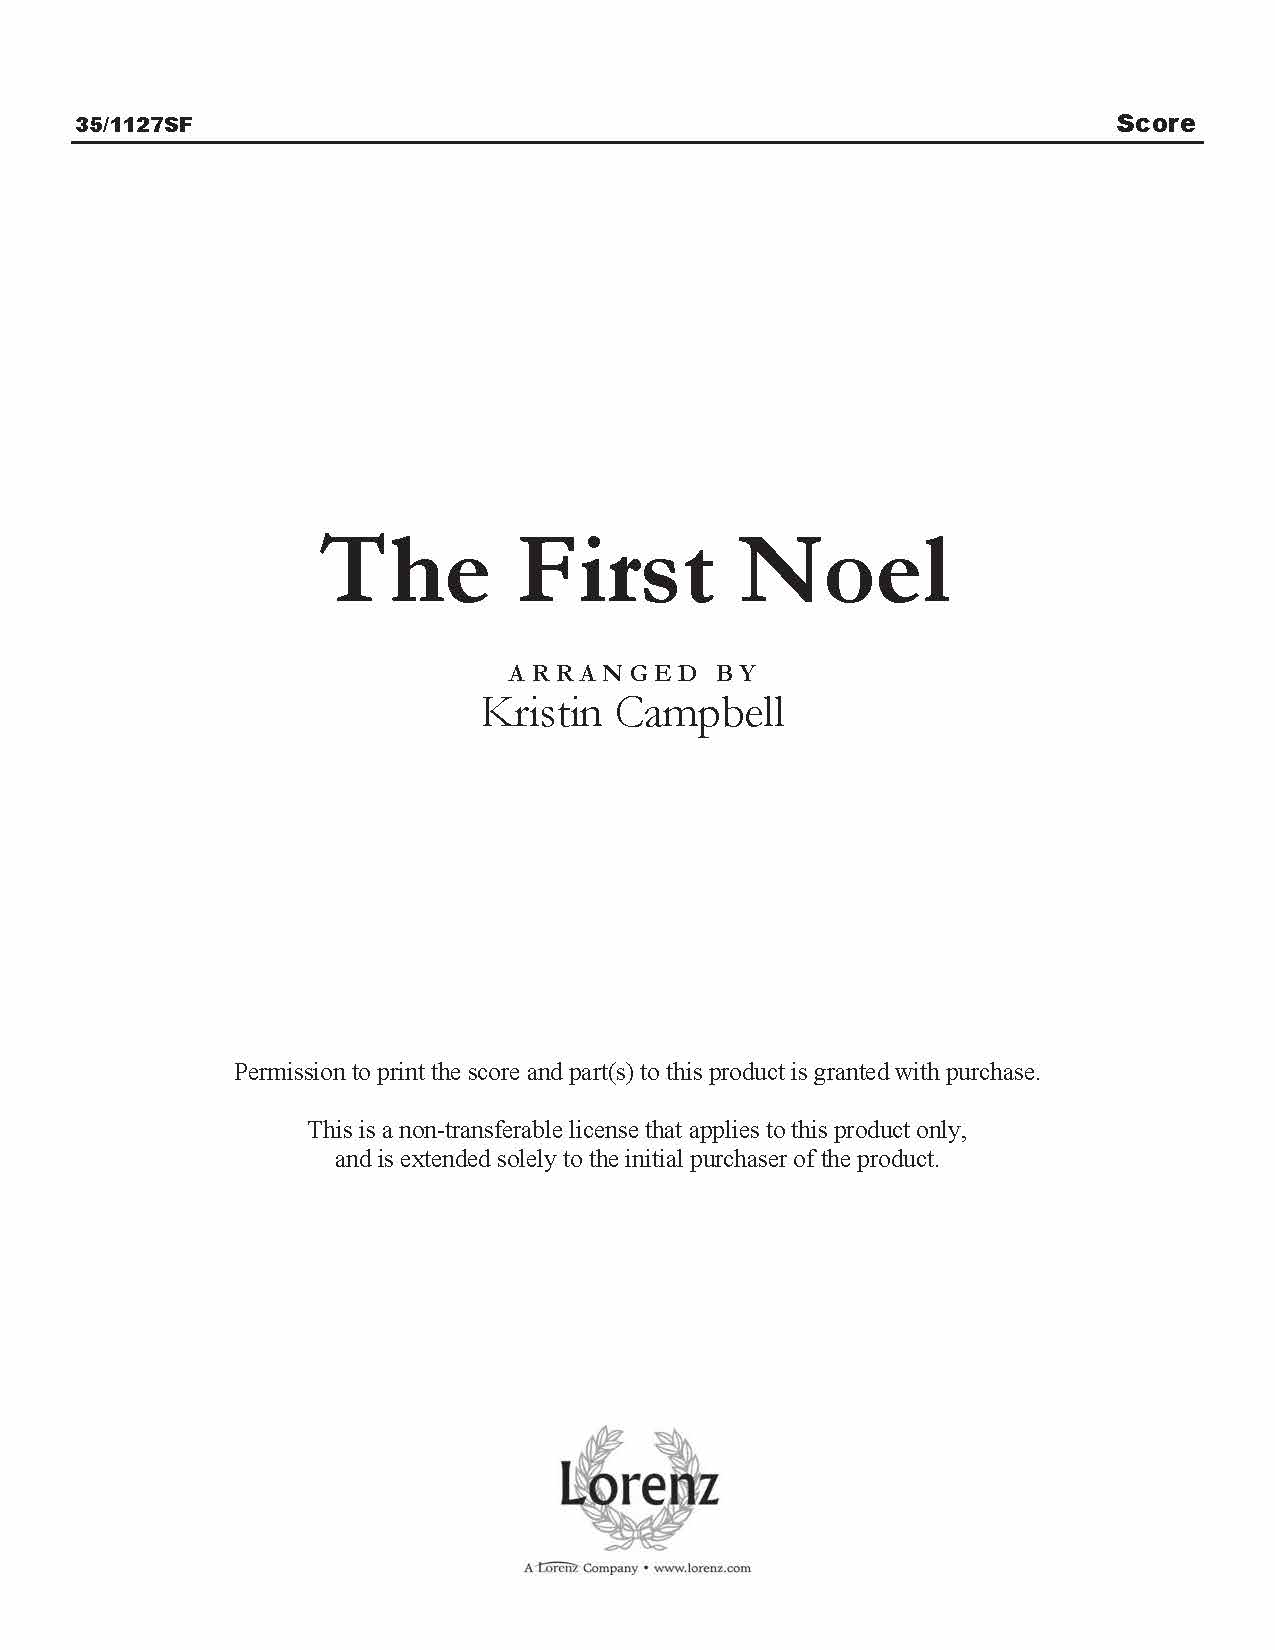 The First Noel (Digital Delivery)